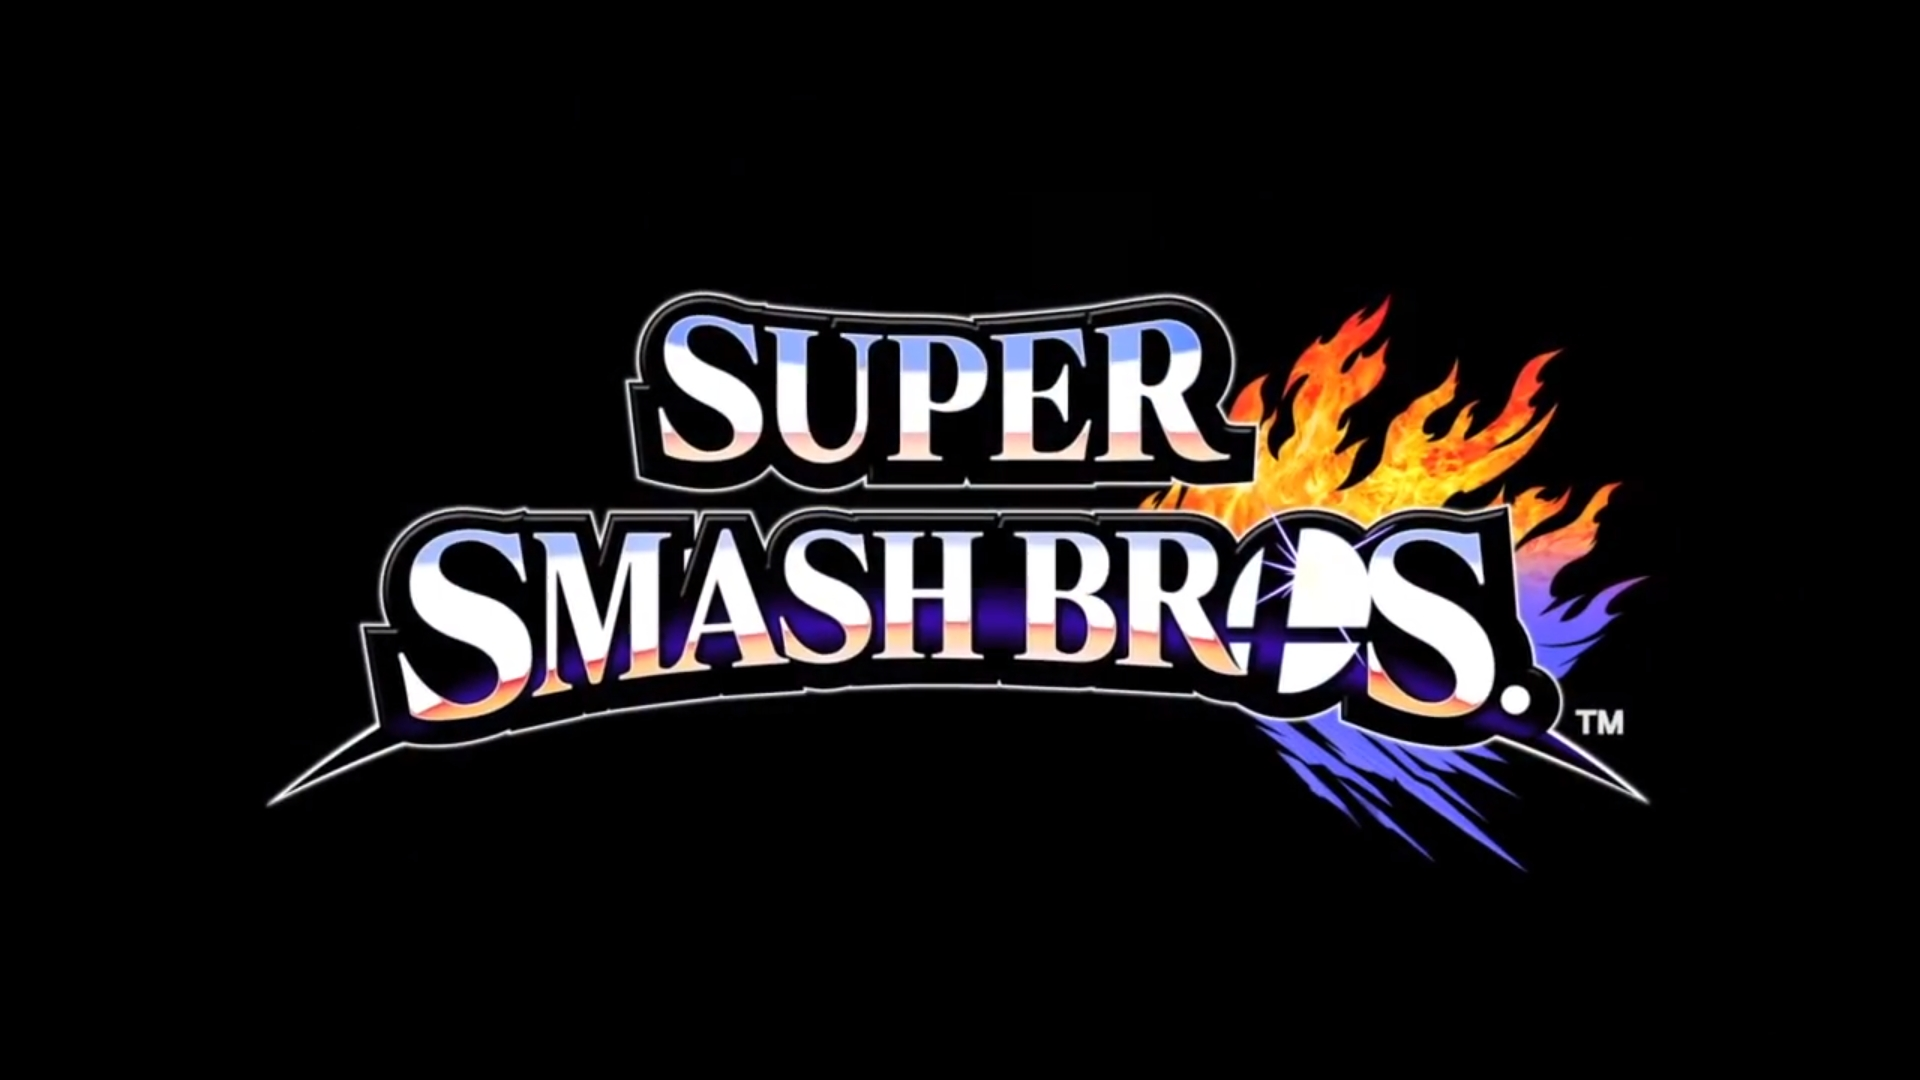 10 Top Super Smash Bros Logo Wallpaper FULL HD 1080p For PC Desktop